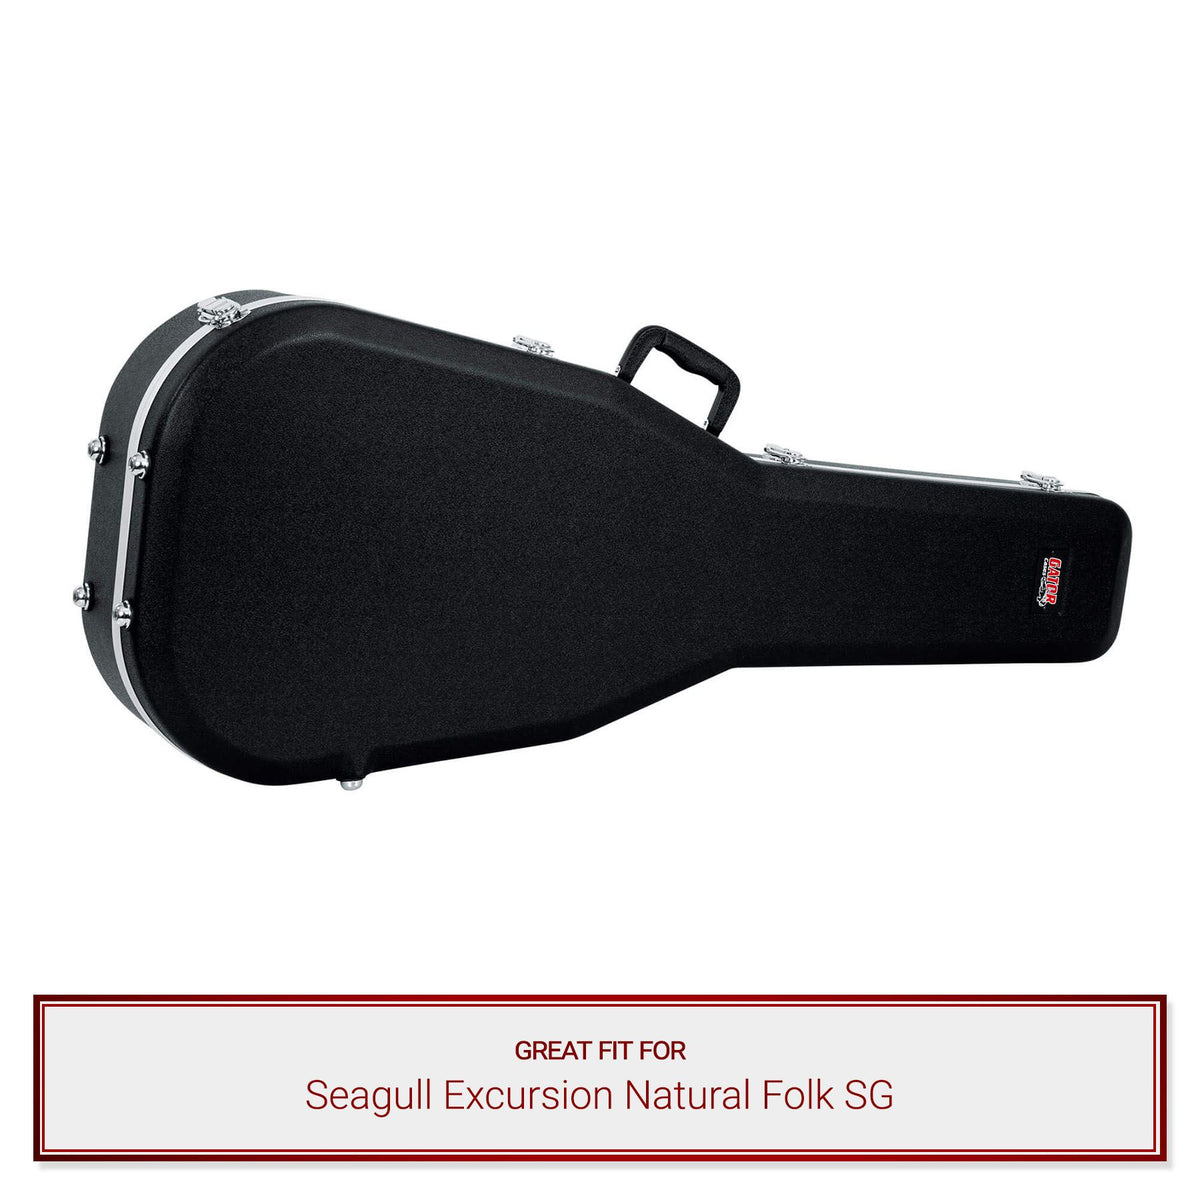 Gator Classical Guitar Case fits Seagull Excursion Natural Folk SG